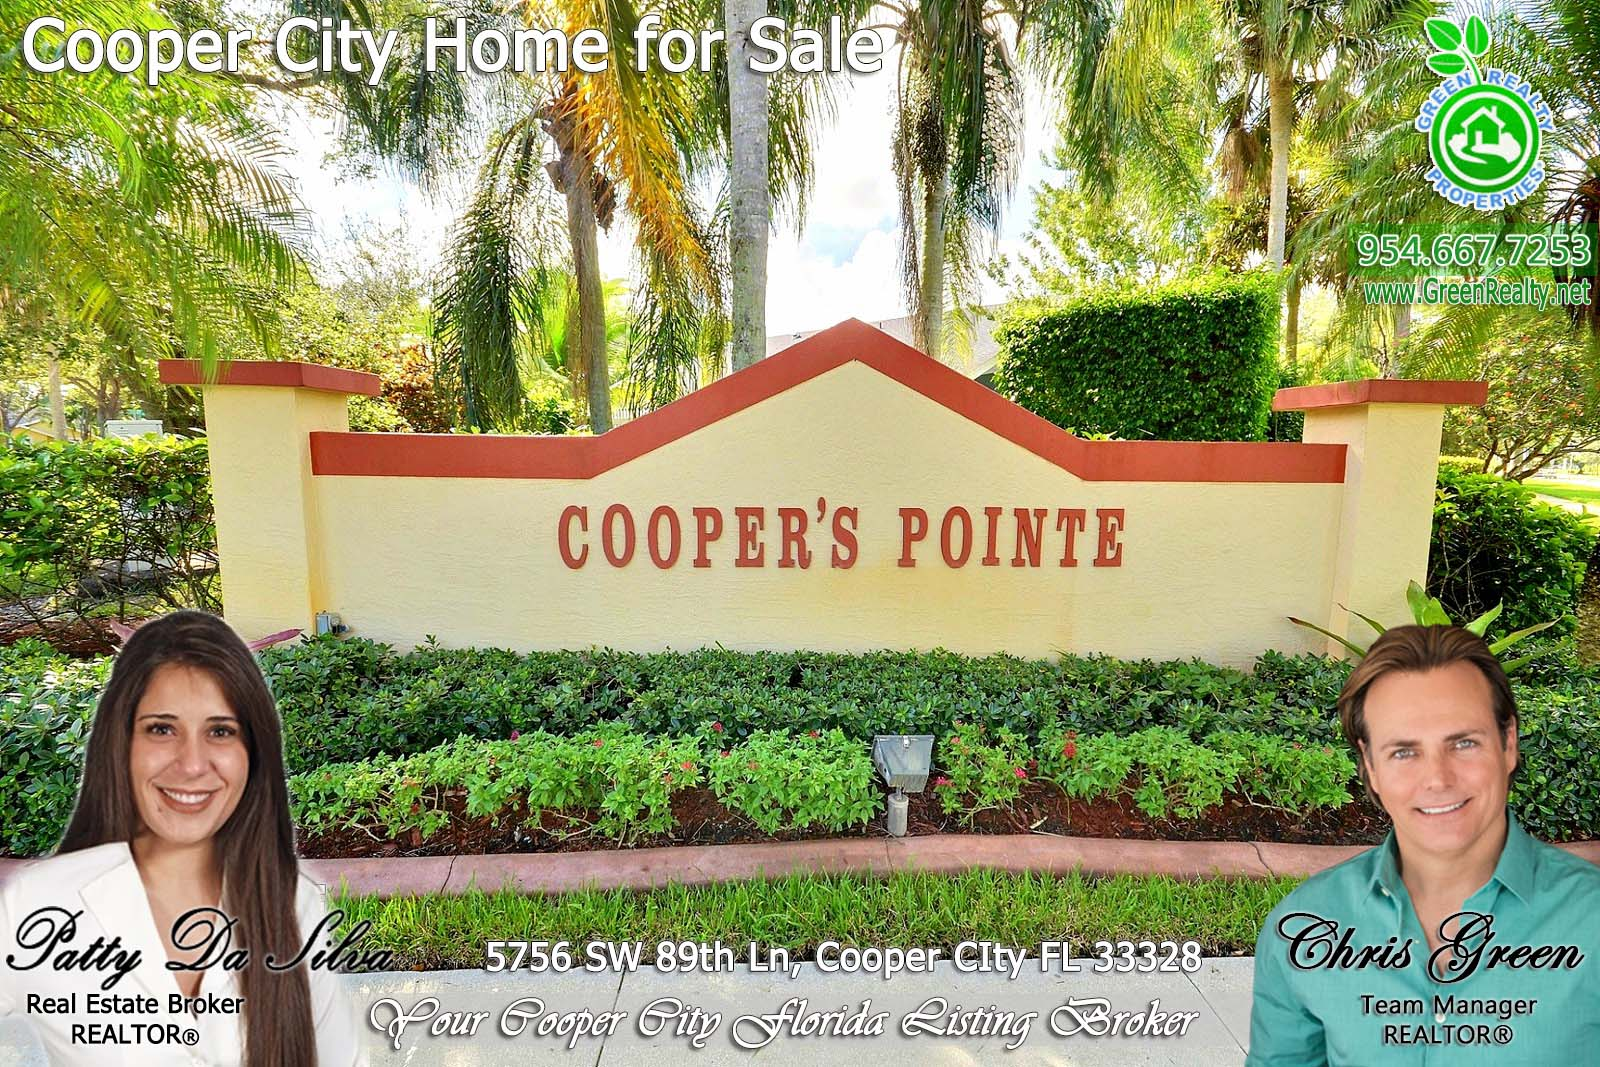 Patty Da Silva SELLS Cooper City Homes